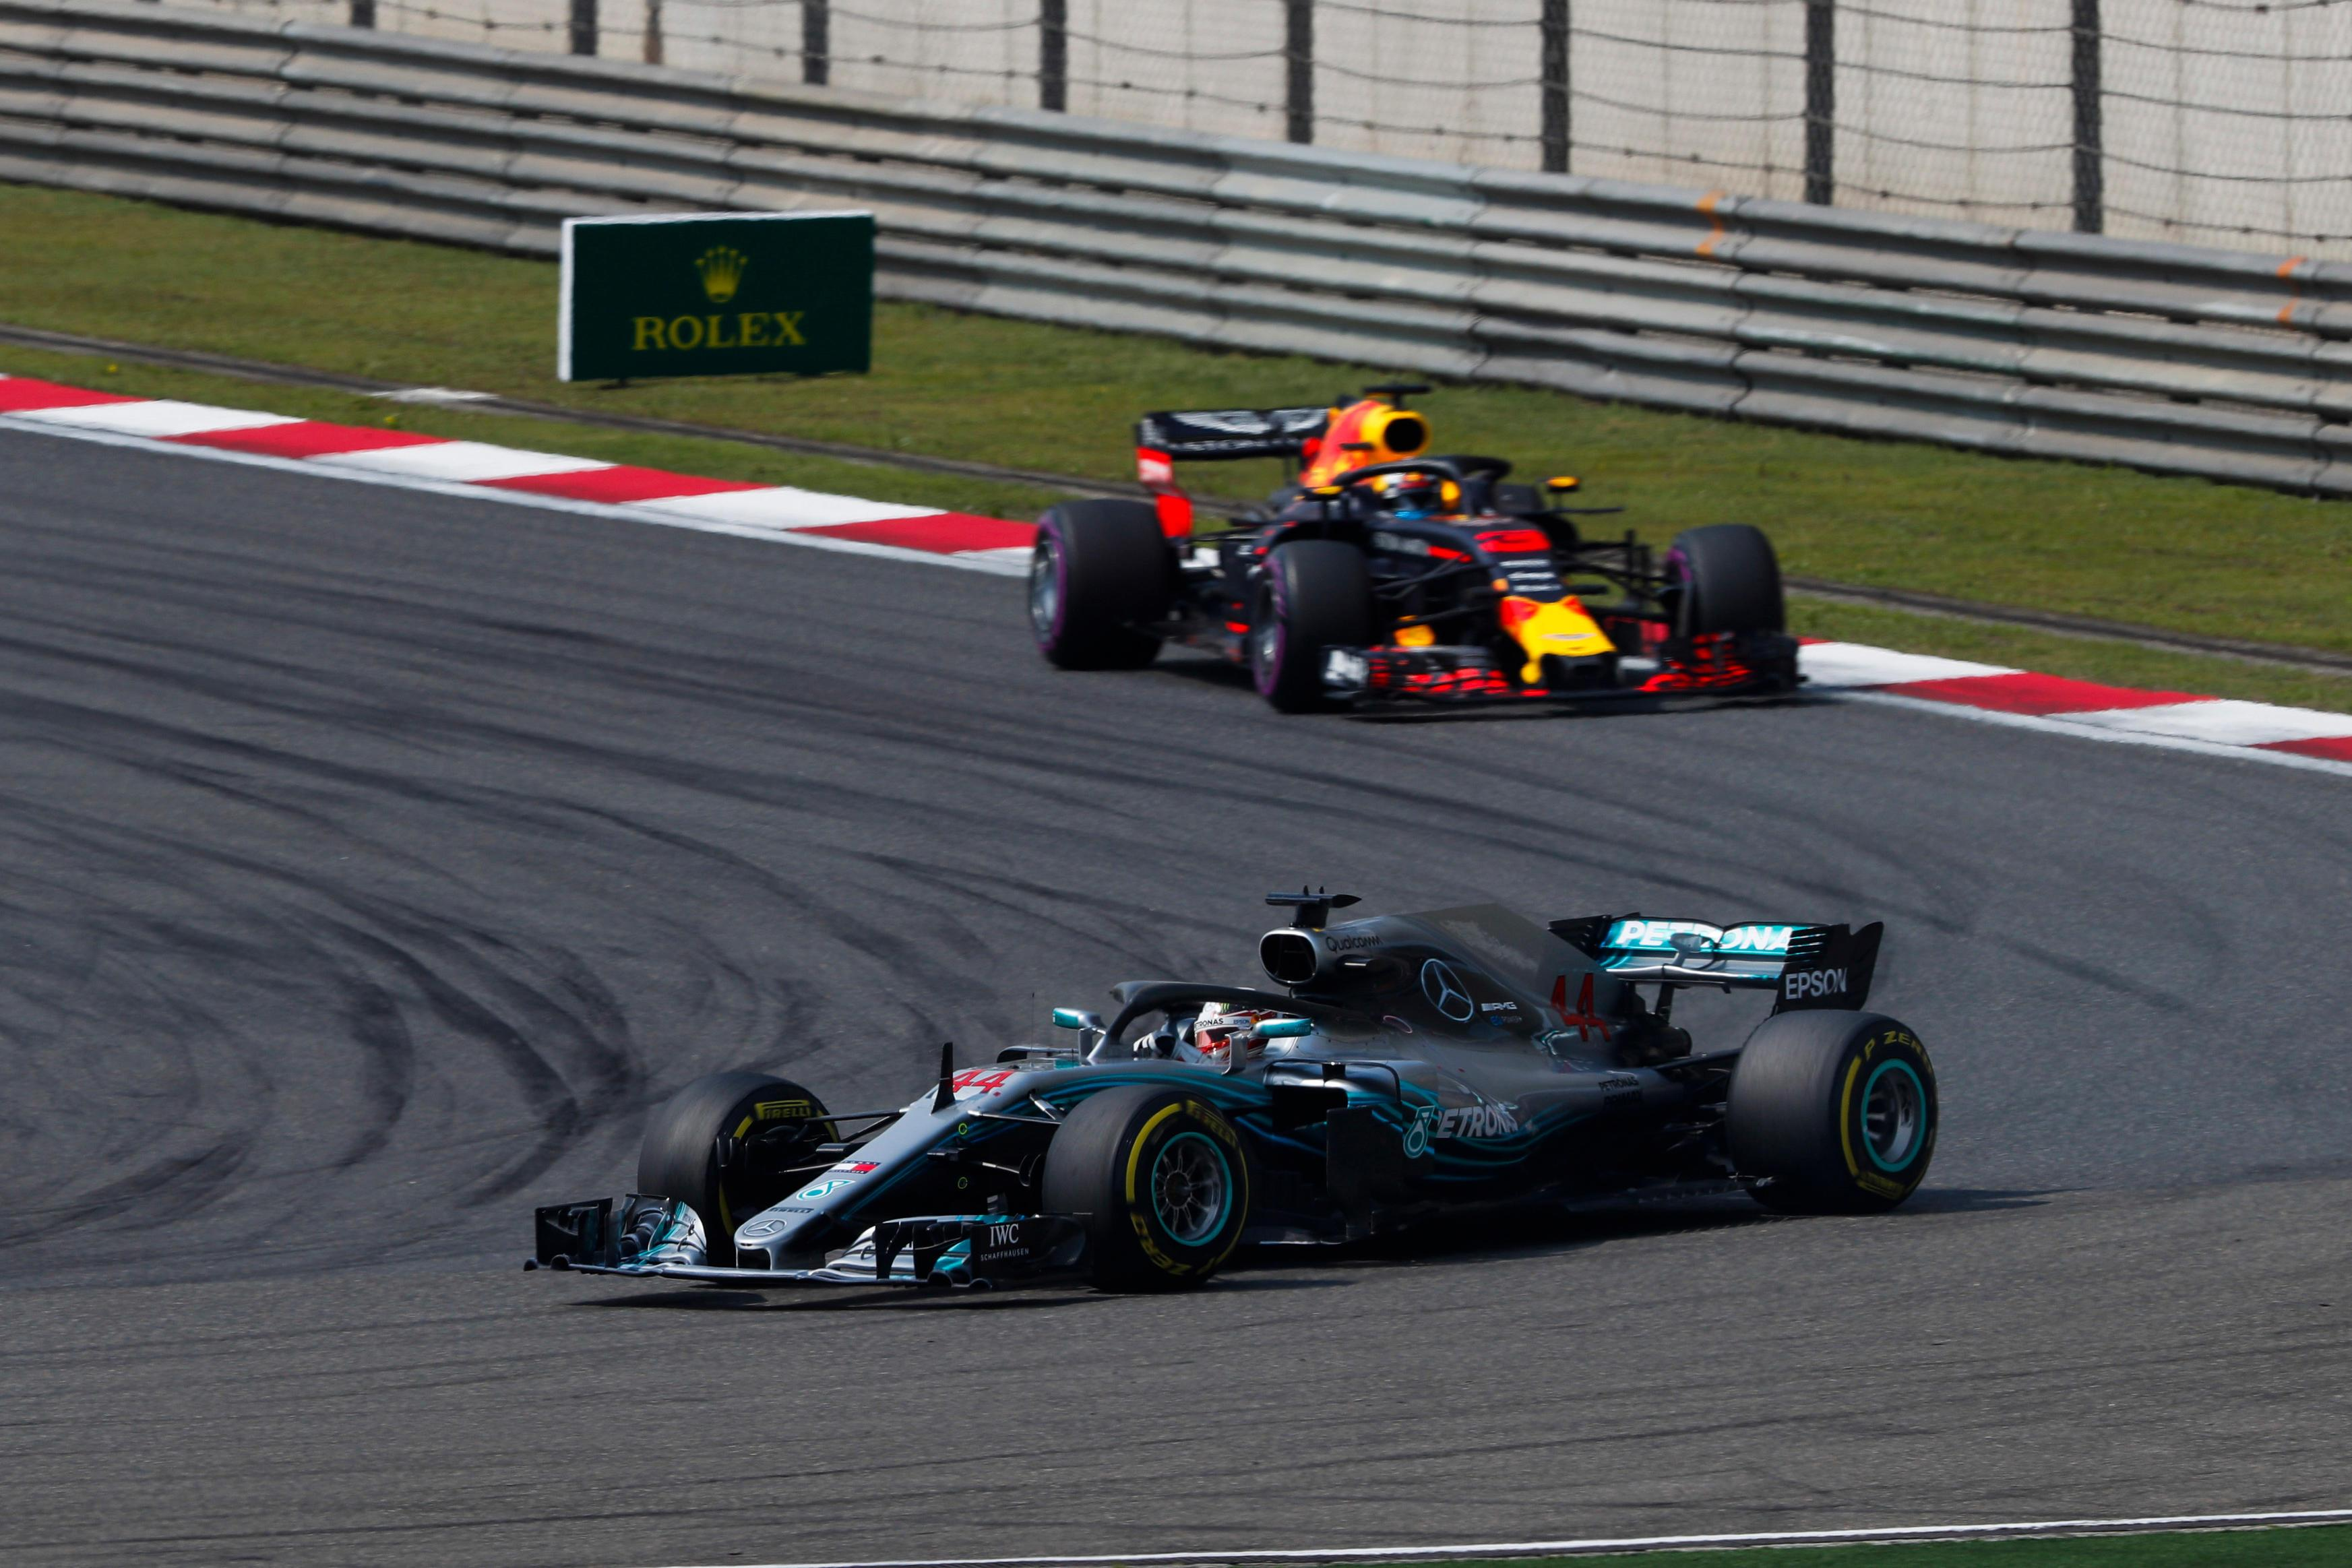 Mercedes still still top of the constructors' standings despite failing to win a race